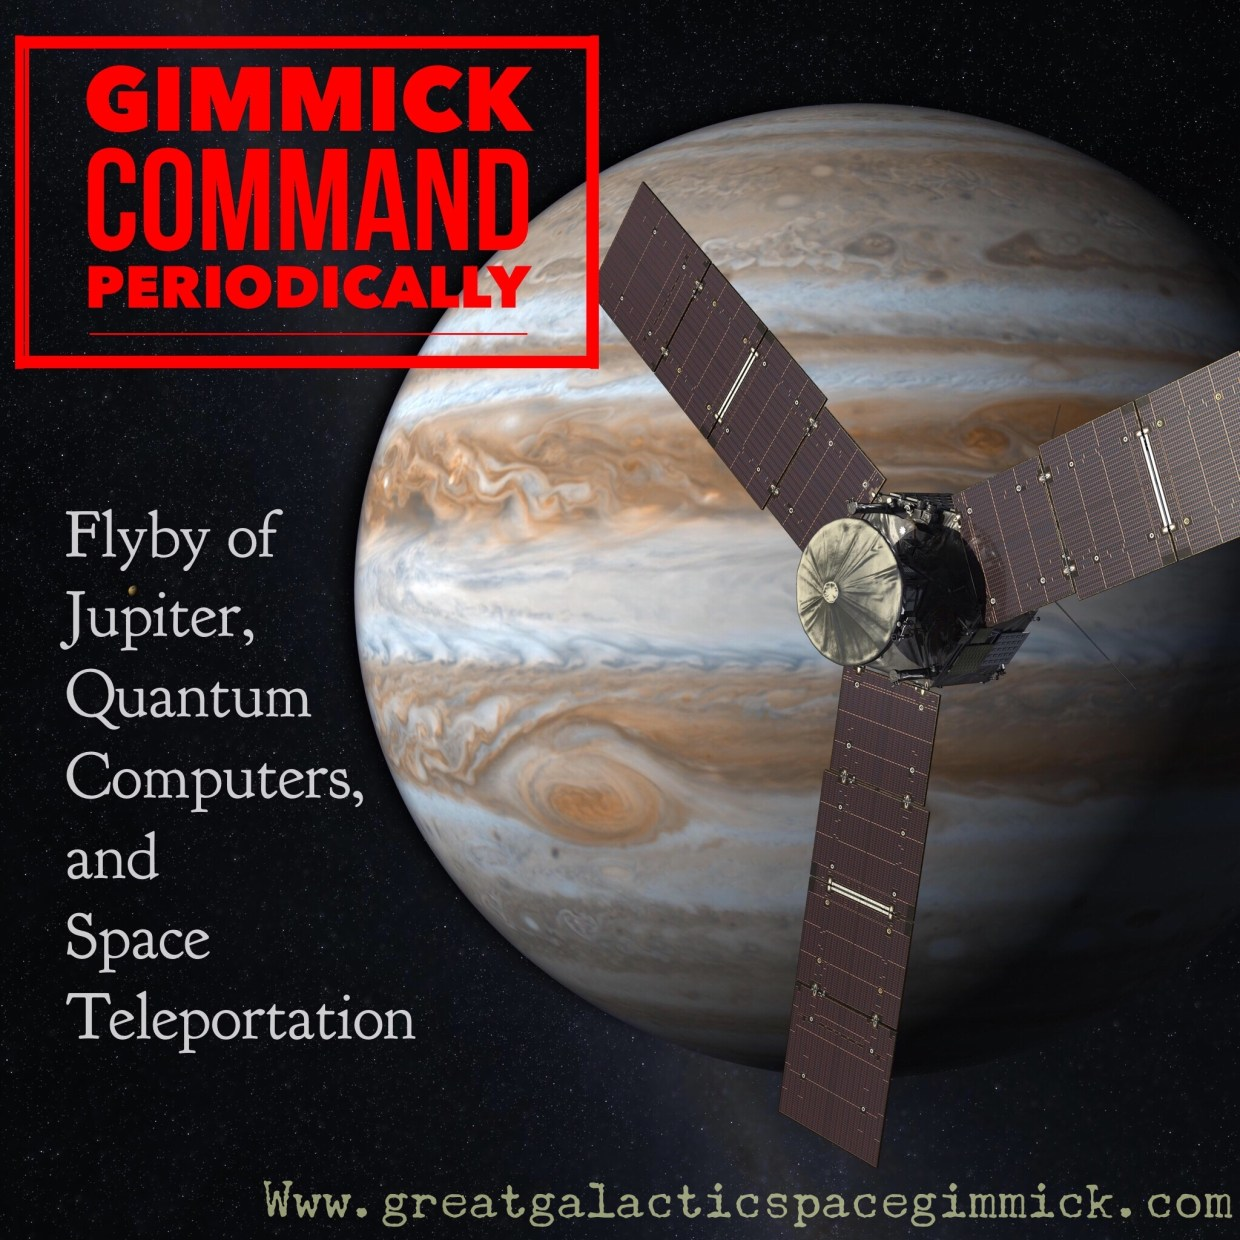 Gimmick Command Periodically - Flyby of Jupiter, Quantum Computers